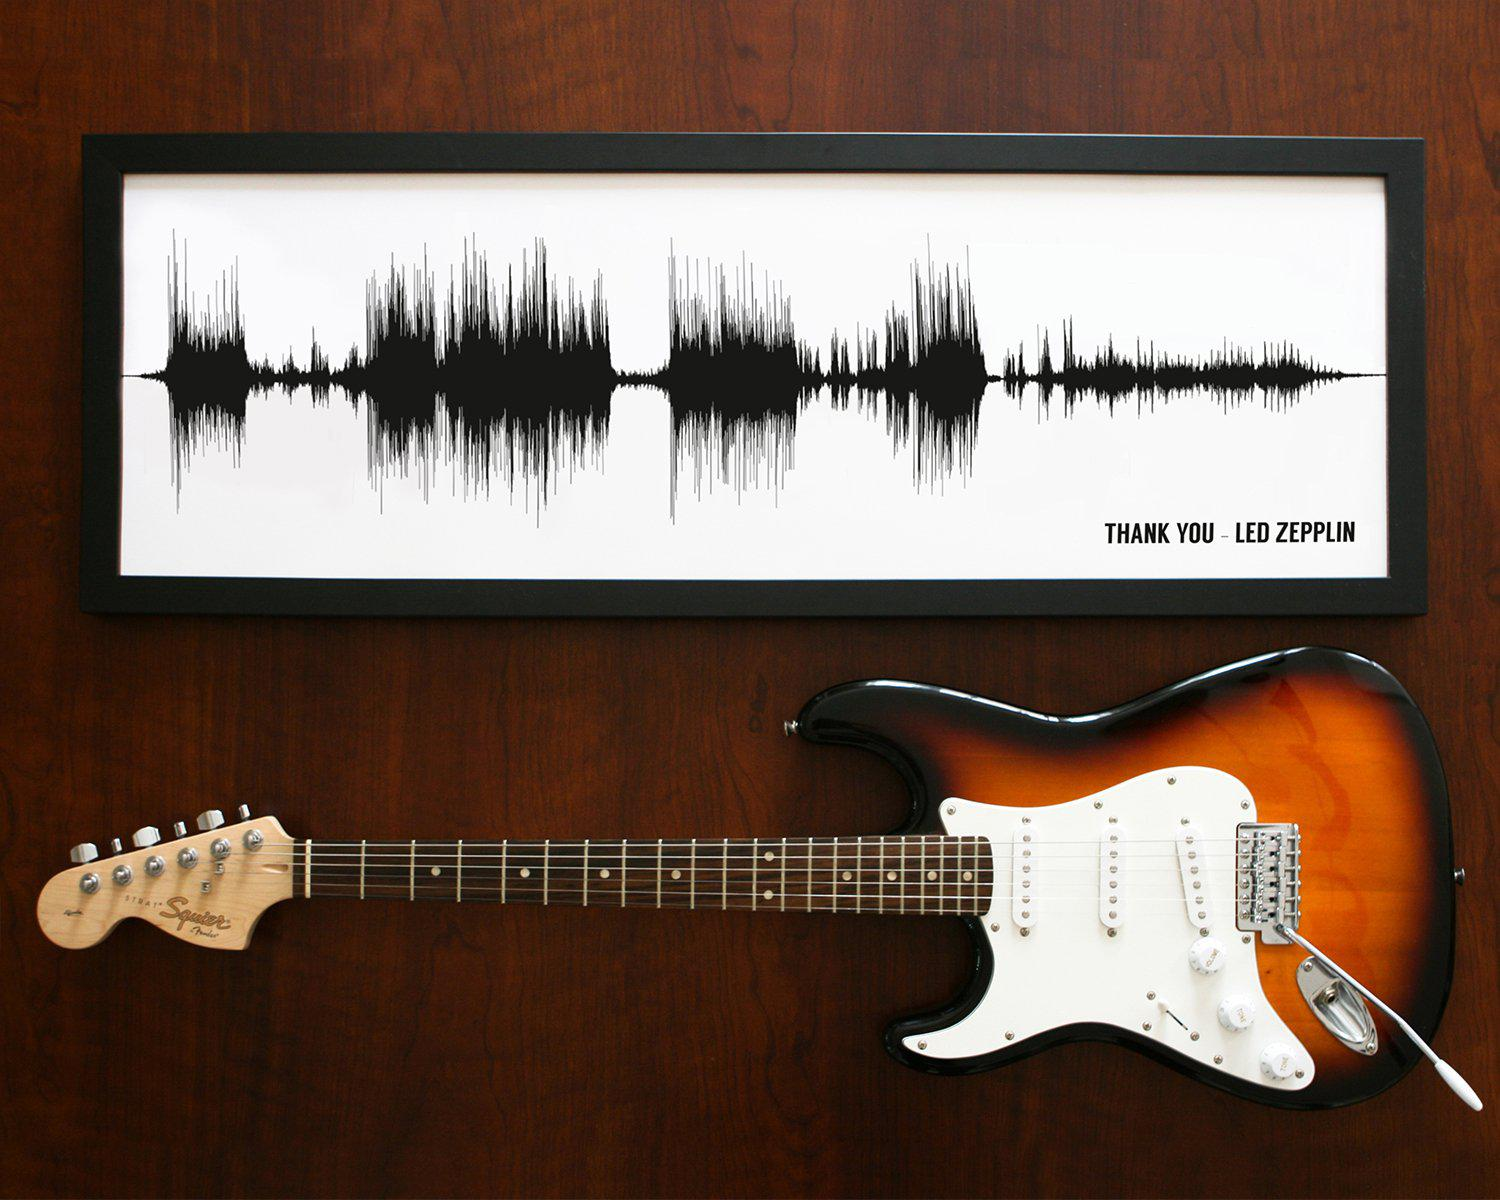 Song Sound Wave Art Framed Musician Gifts - Artsy Voiceprint